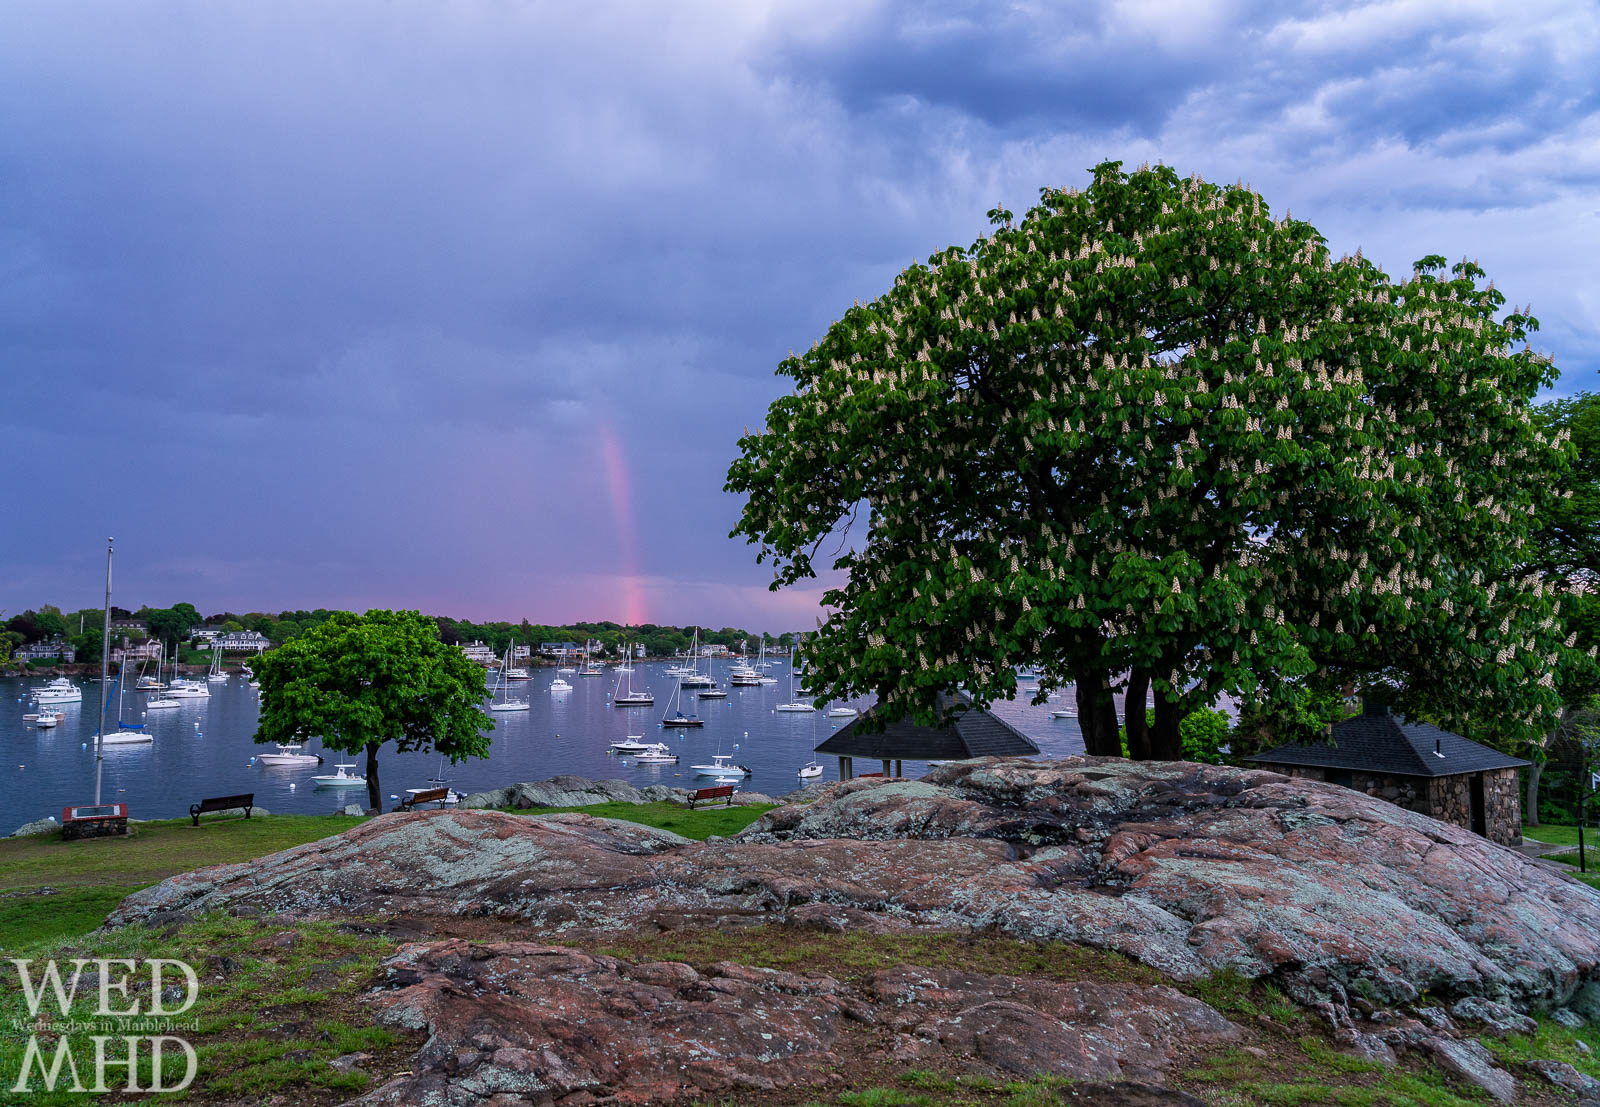 The chestnut tree at Crocker park reaches full bloom as a pink rainbow appears over Marblehead Harbor